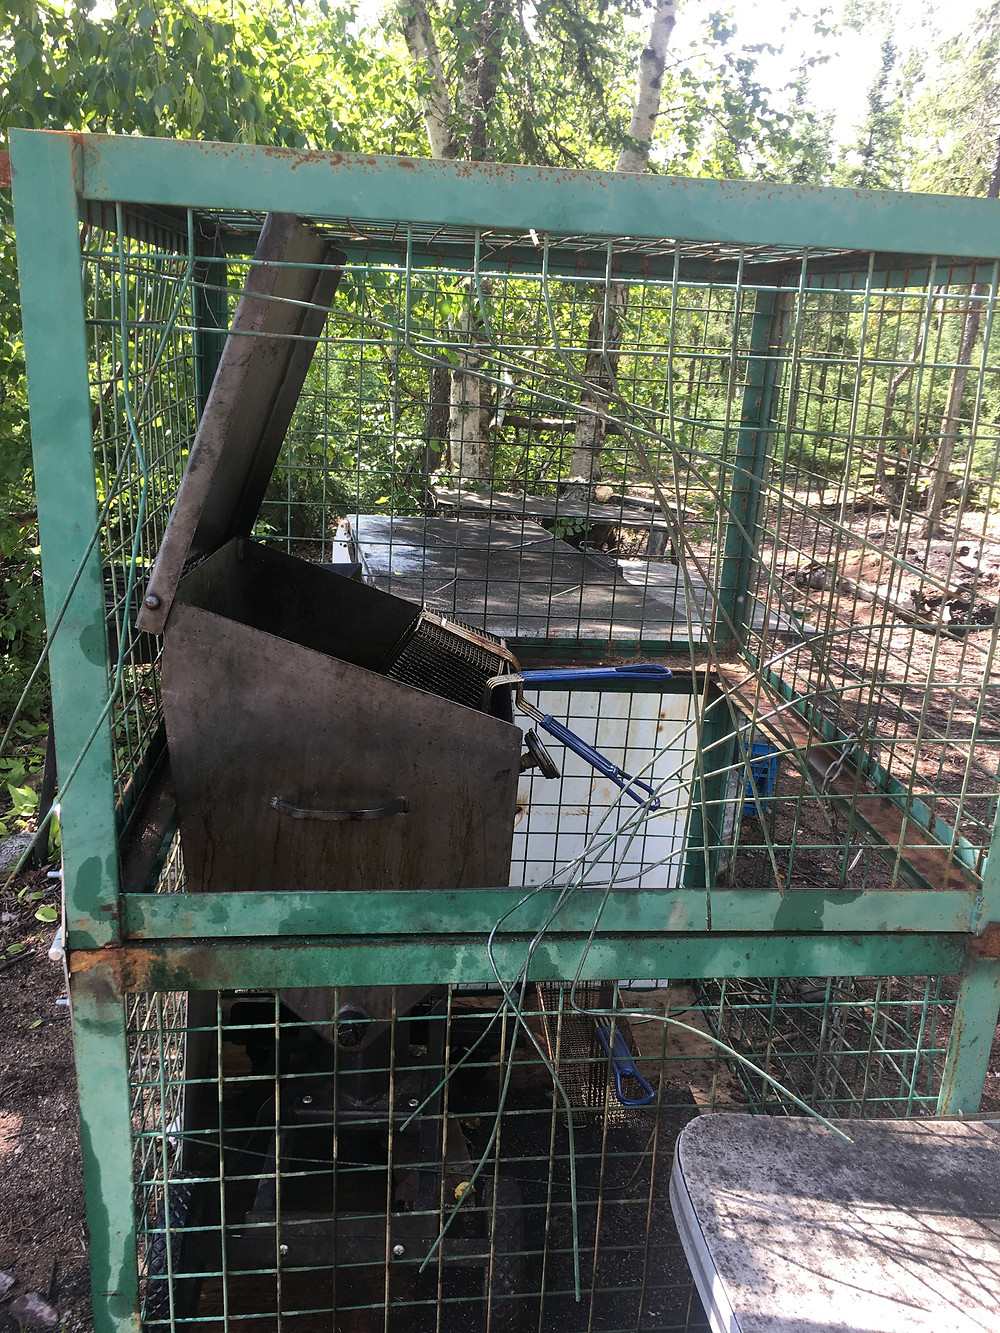 deep fryer cage at shore lunch that a bear destroyed!